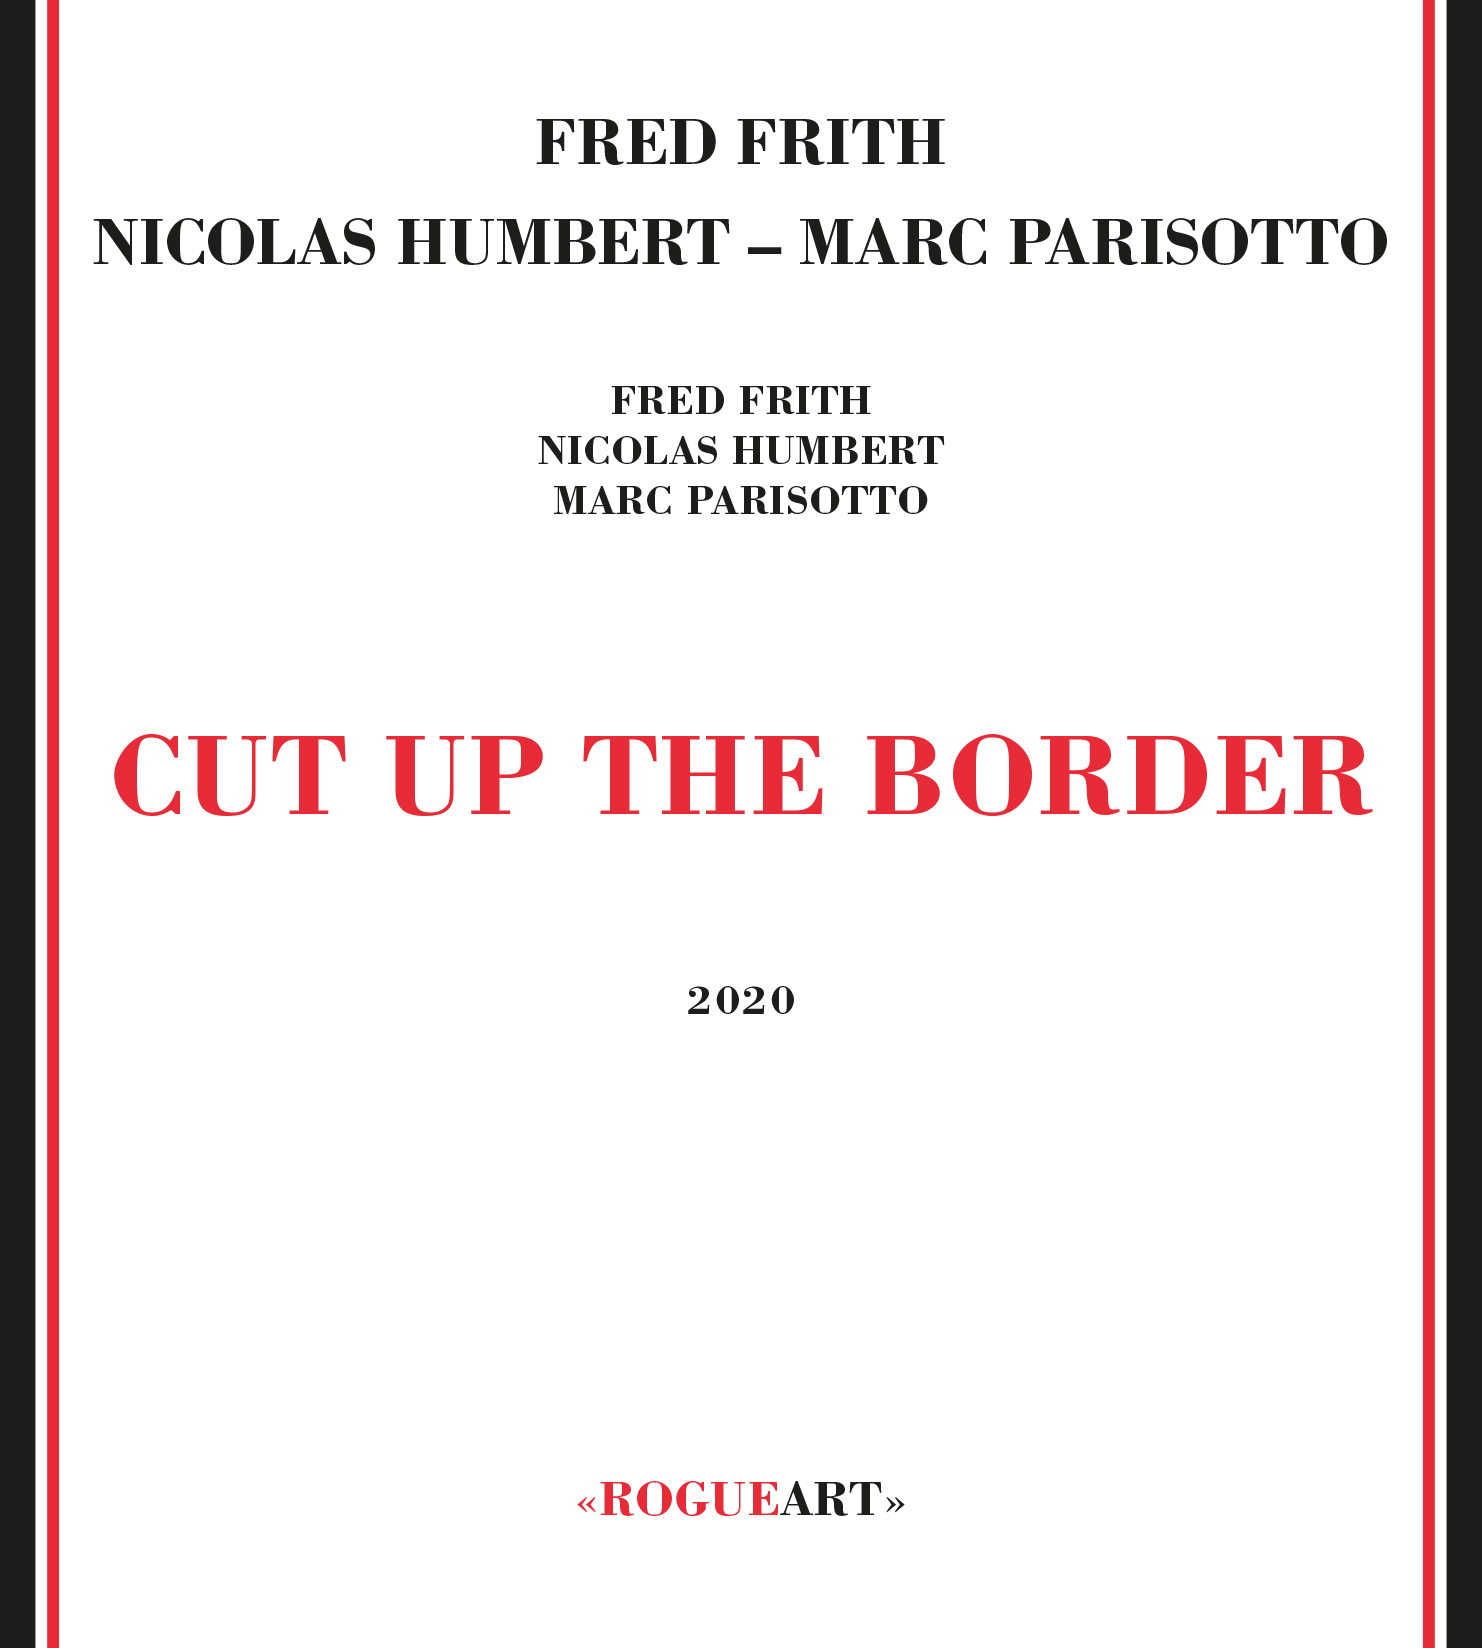 Front cover of the album CUT UP THE BORDER